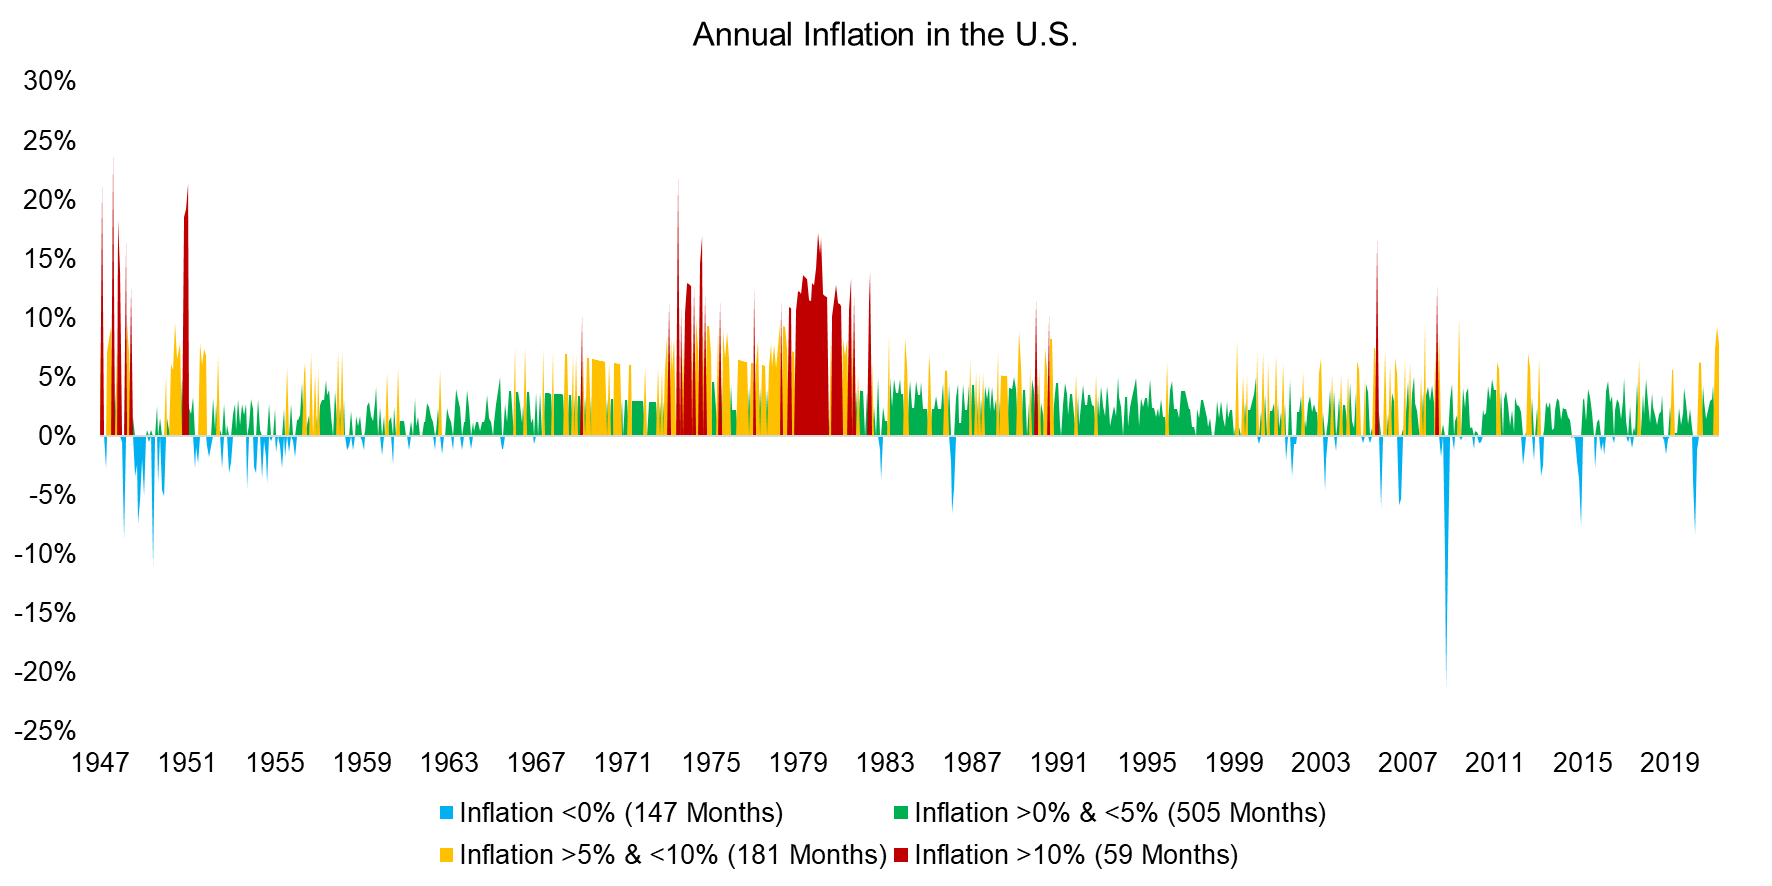 Annual Inflation in the U.S.